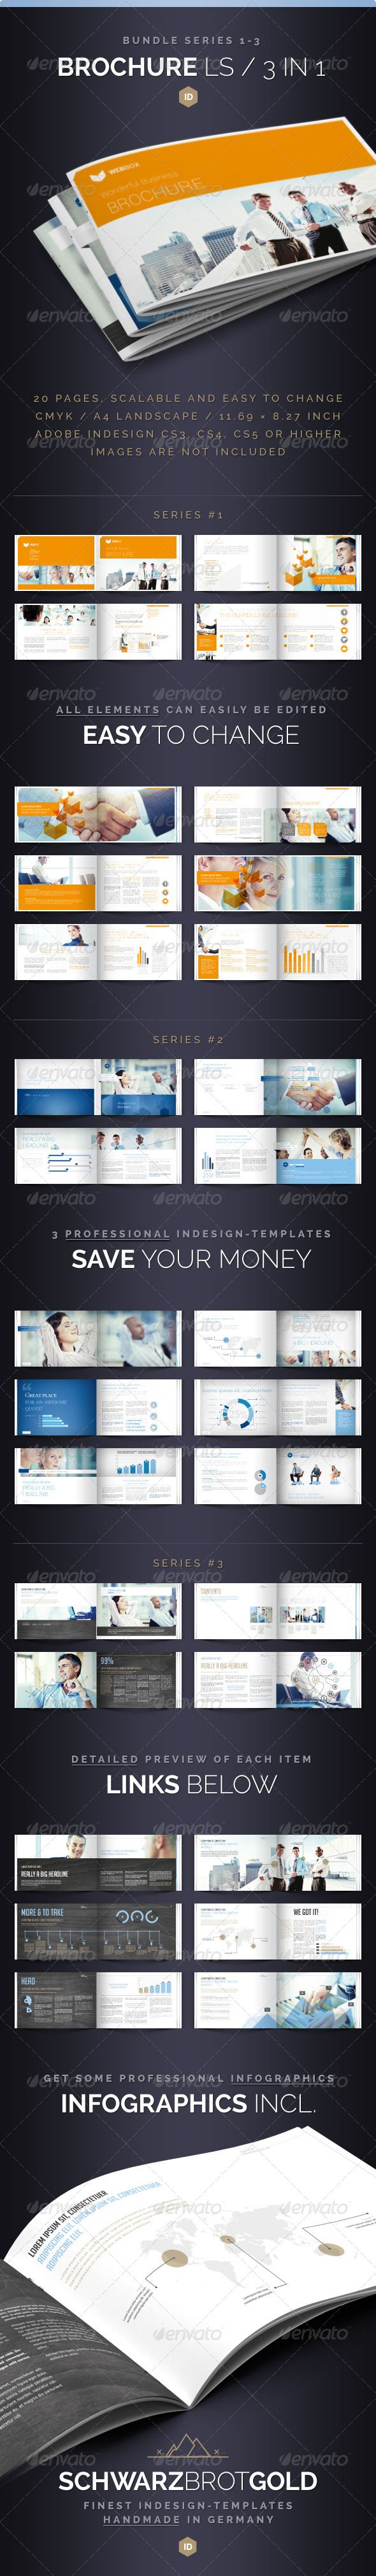 Best Collateral Design Images On Pinterest Brochure Template - Multi page brochure template